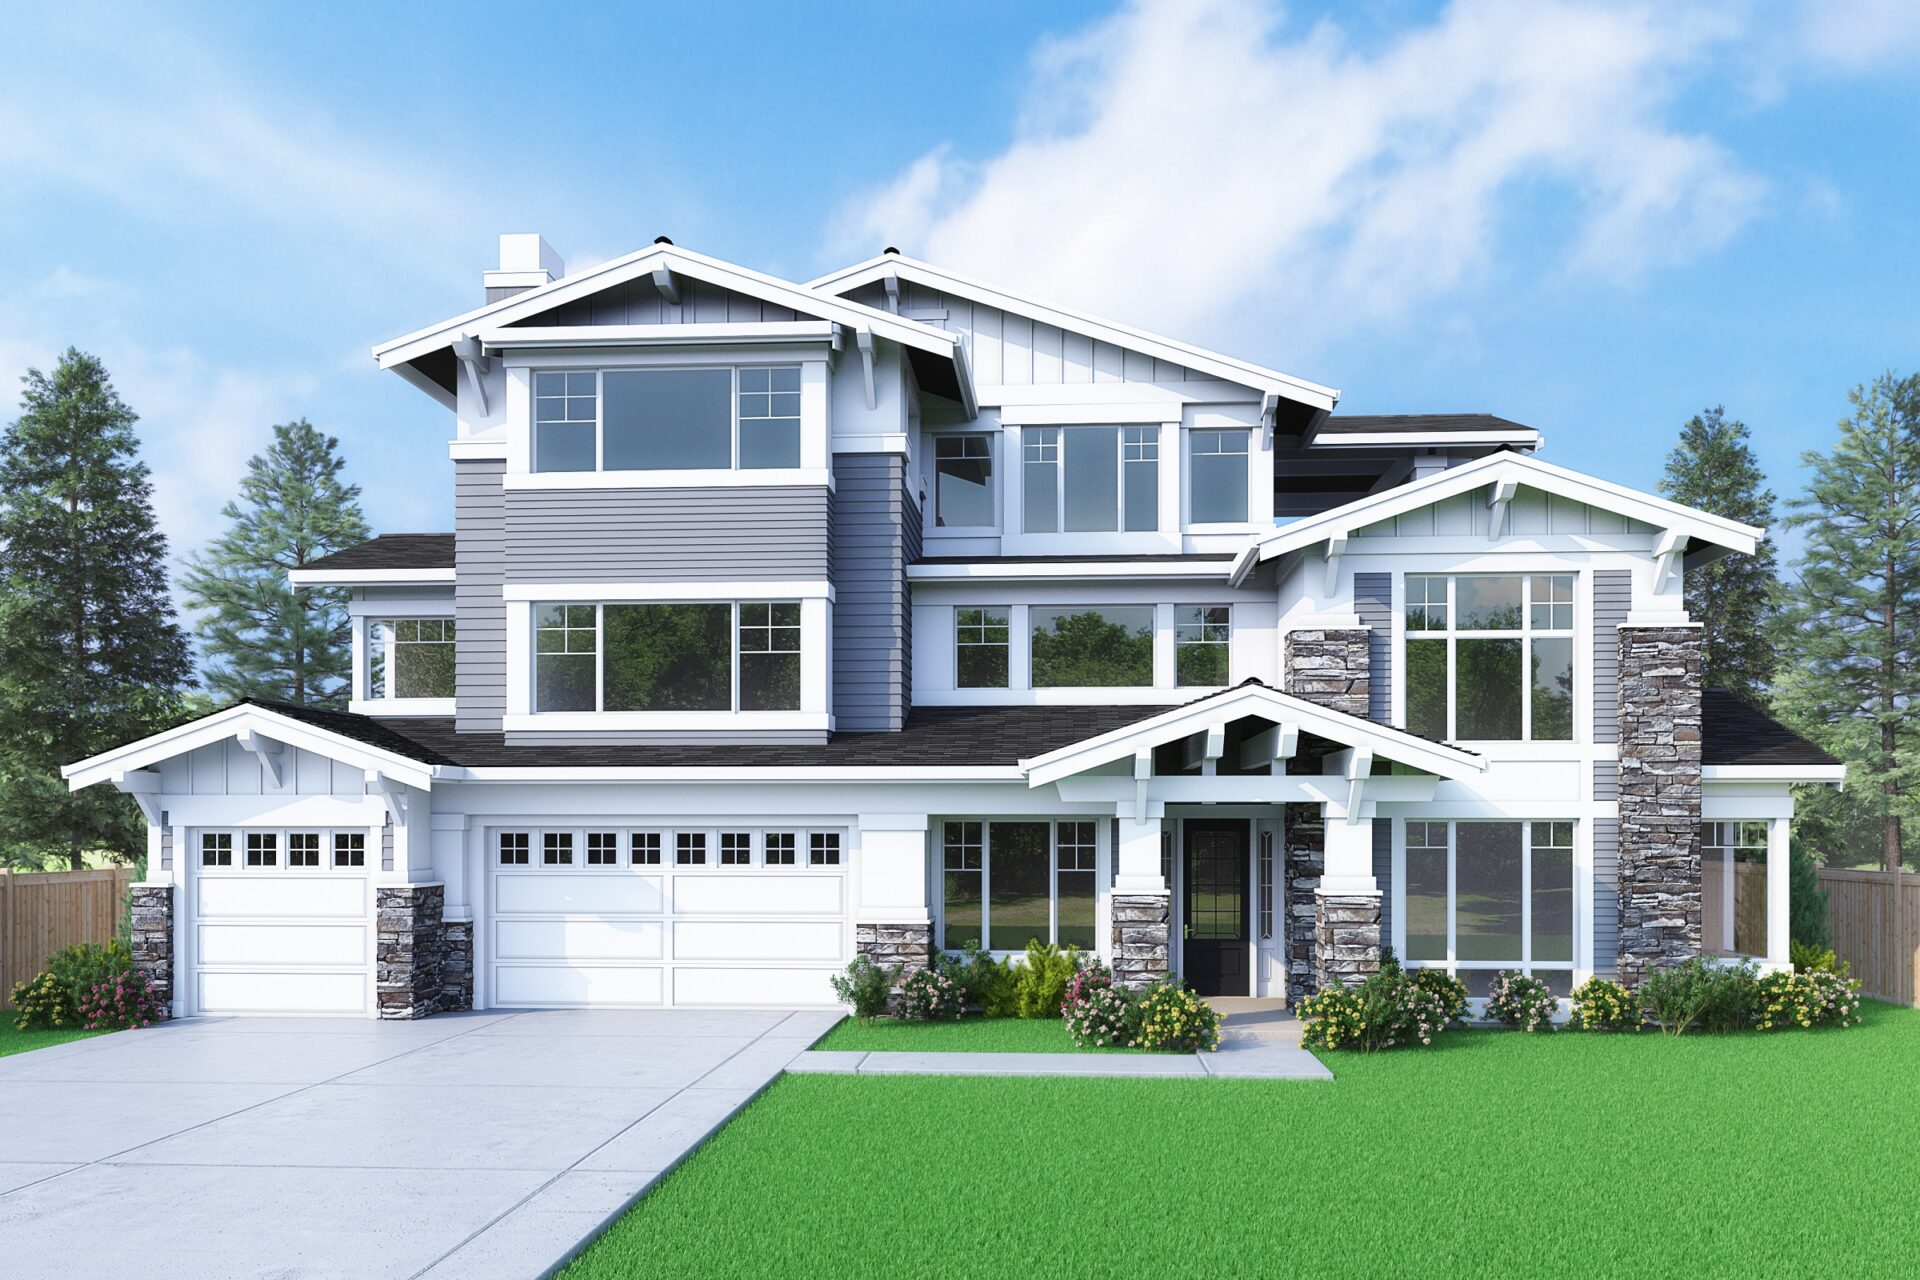 View our new luxury home construction on 9810 NE 15th St, in Bellevue, WA from MN Custom Homes